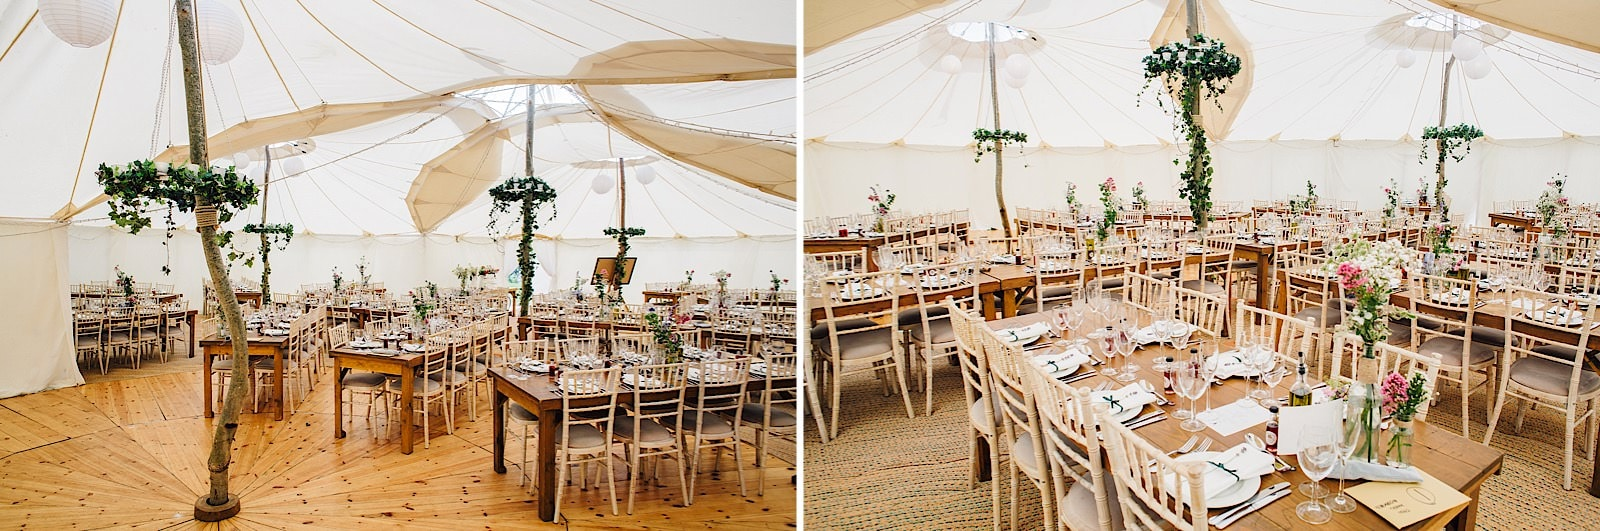 garden-marquee-wedding057